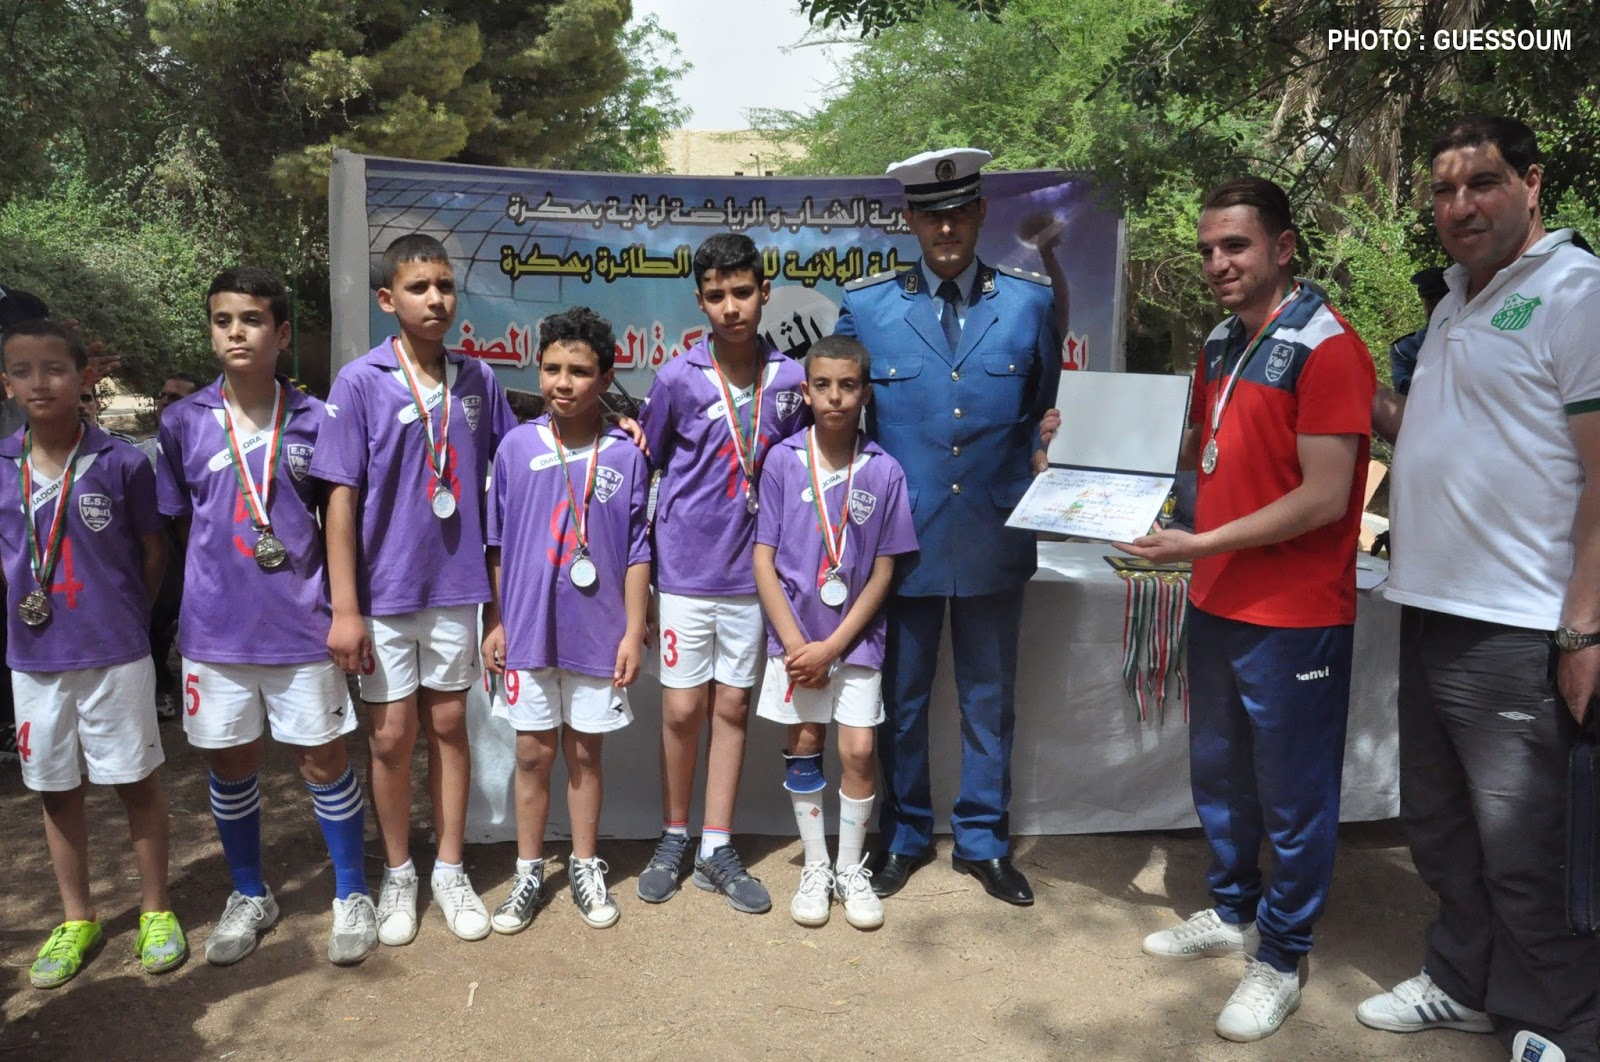 VOLLEY BALL Festival National Des